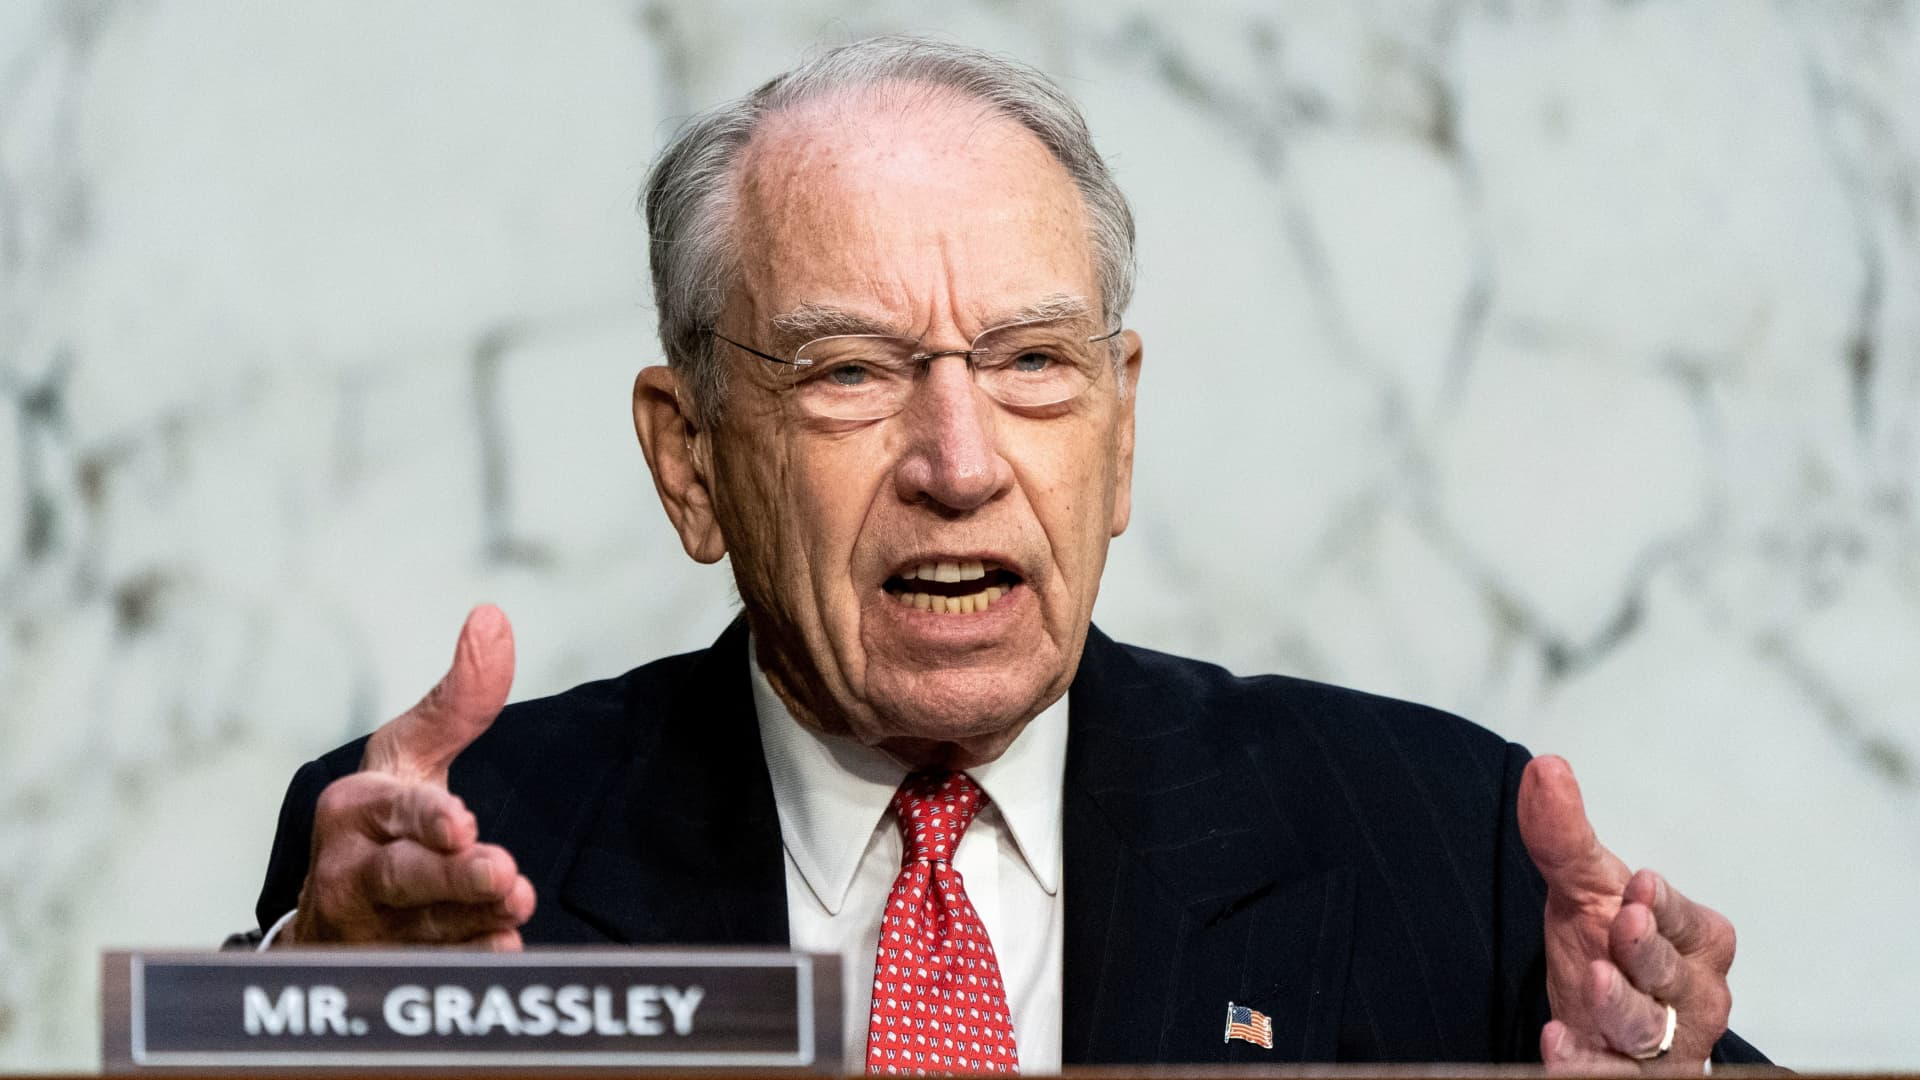 Senator Chuck Grassley (R-IA) speaks during the third day of the confirmation hearing for Supreme Court nominee Judge Amy Coney Barrett before the Senate Judiciary Committee on Capitol Hill in Washington, DC, U.S., October 14, 2020.